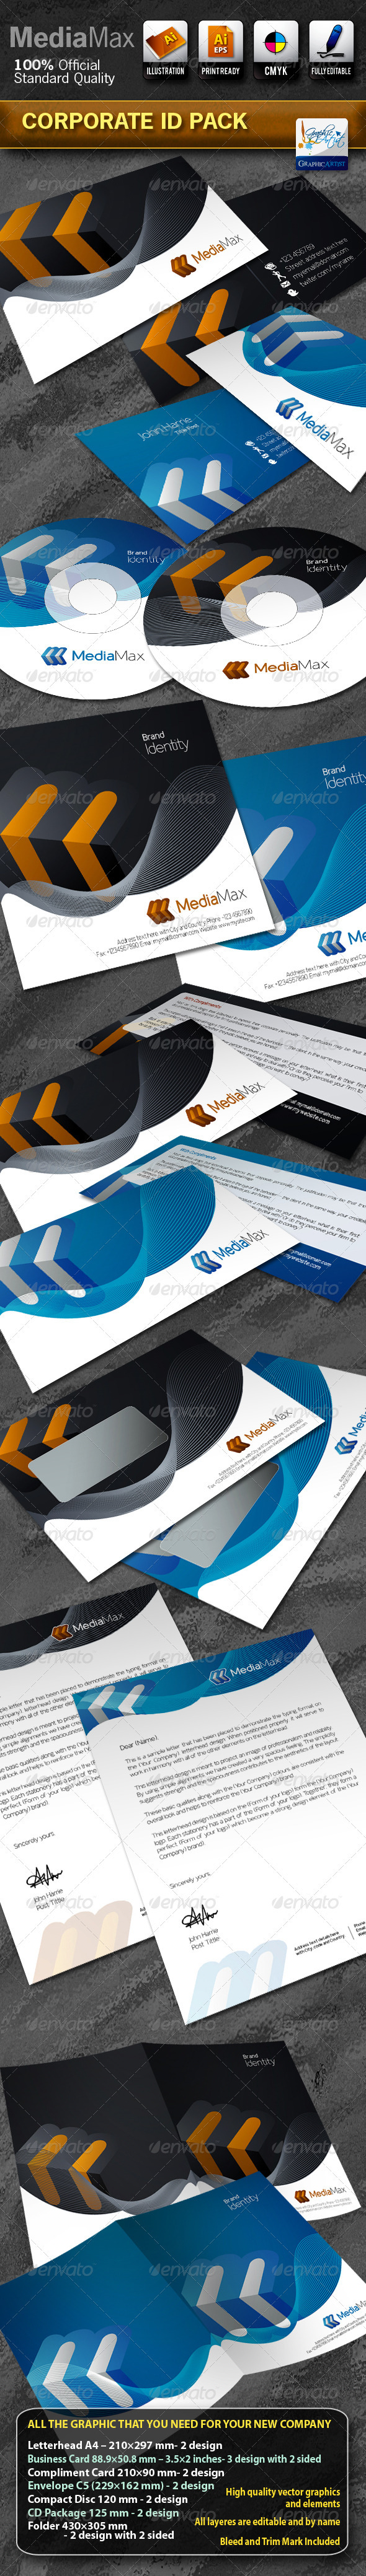 MediaMax Business Corporate ID Pack With Logo Corporate